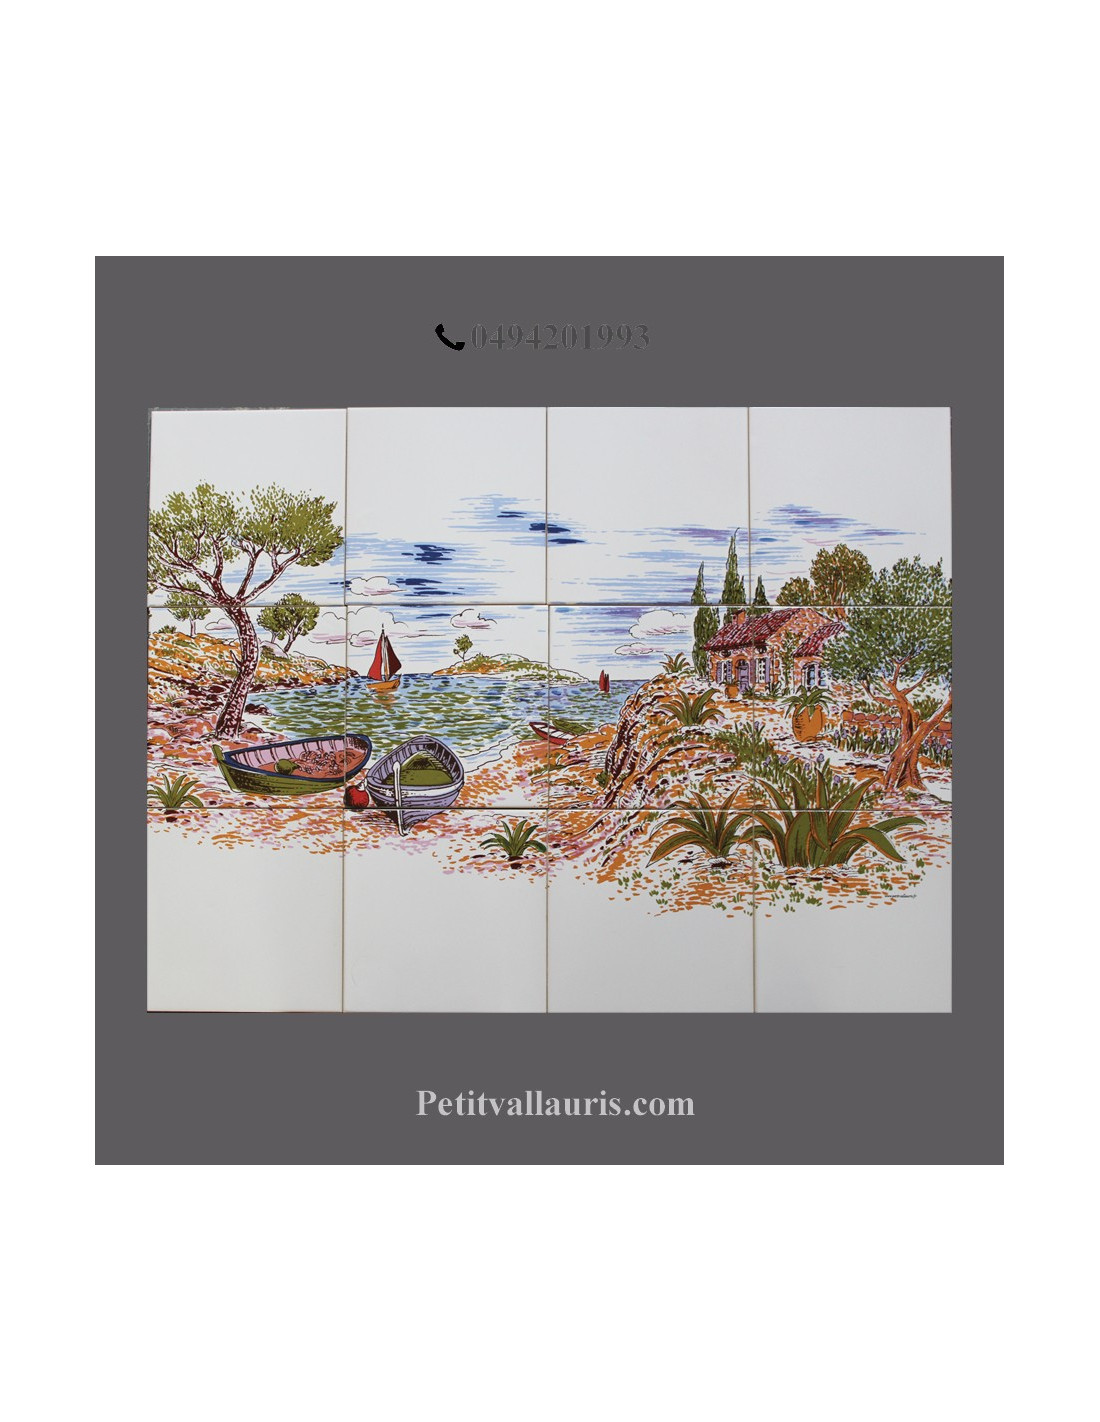 Fresque c ramique rectangulaire d cor bord de mer le for Le petit vallauris